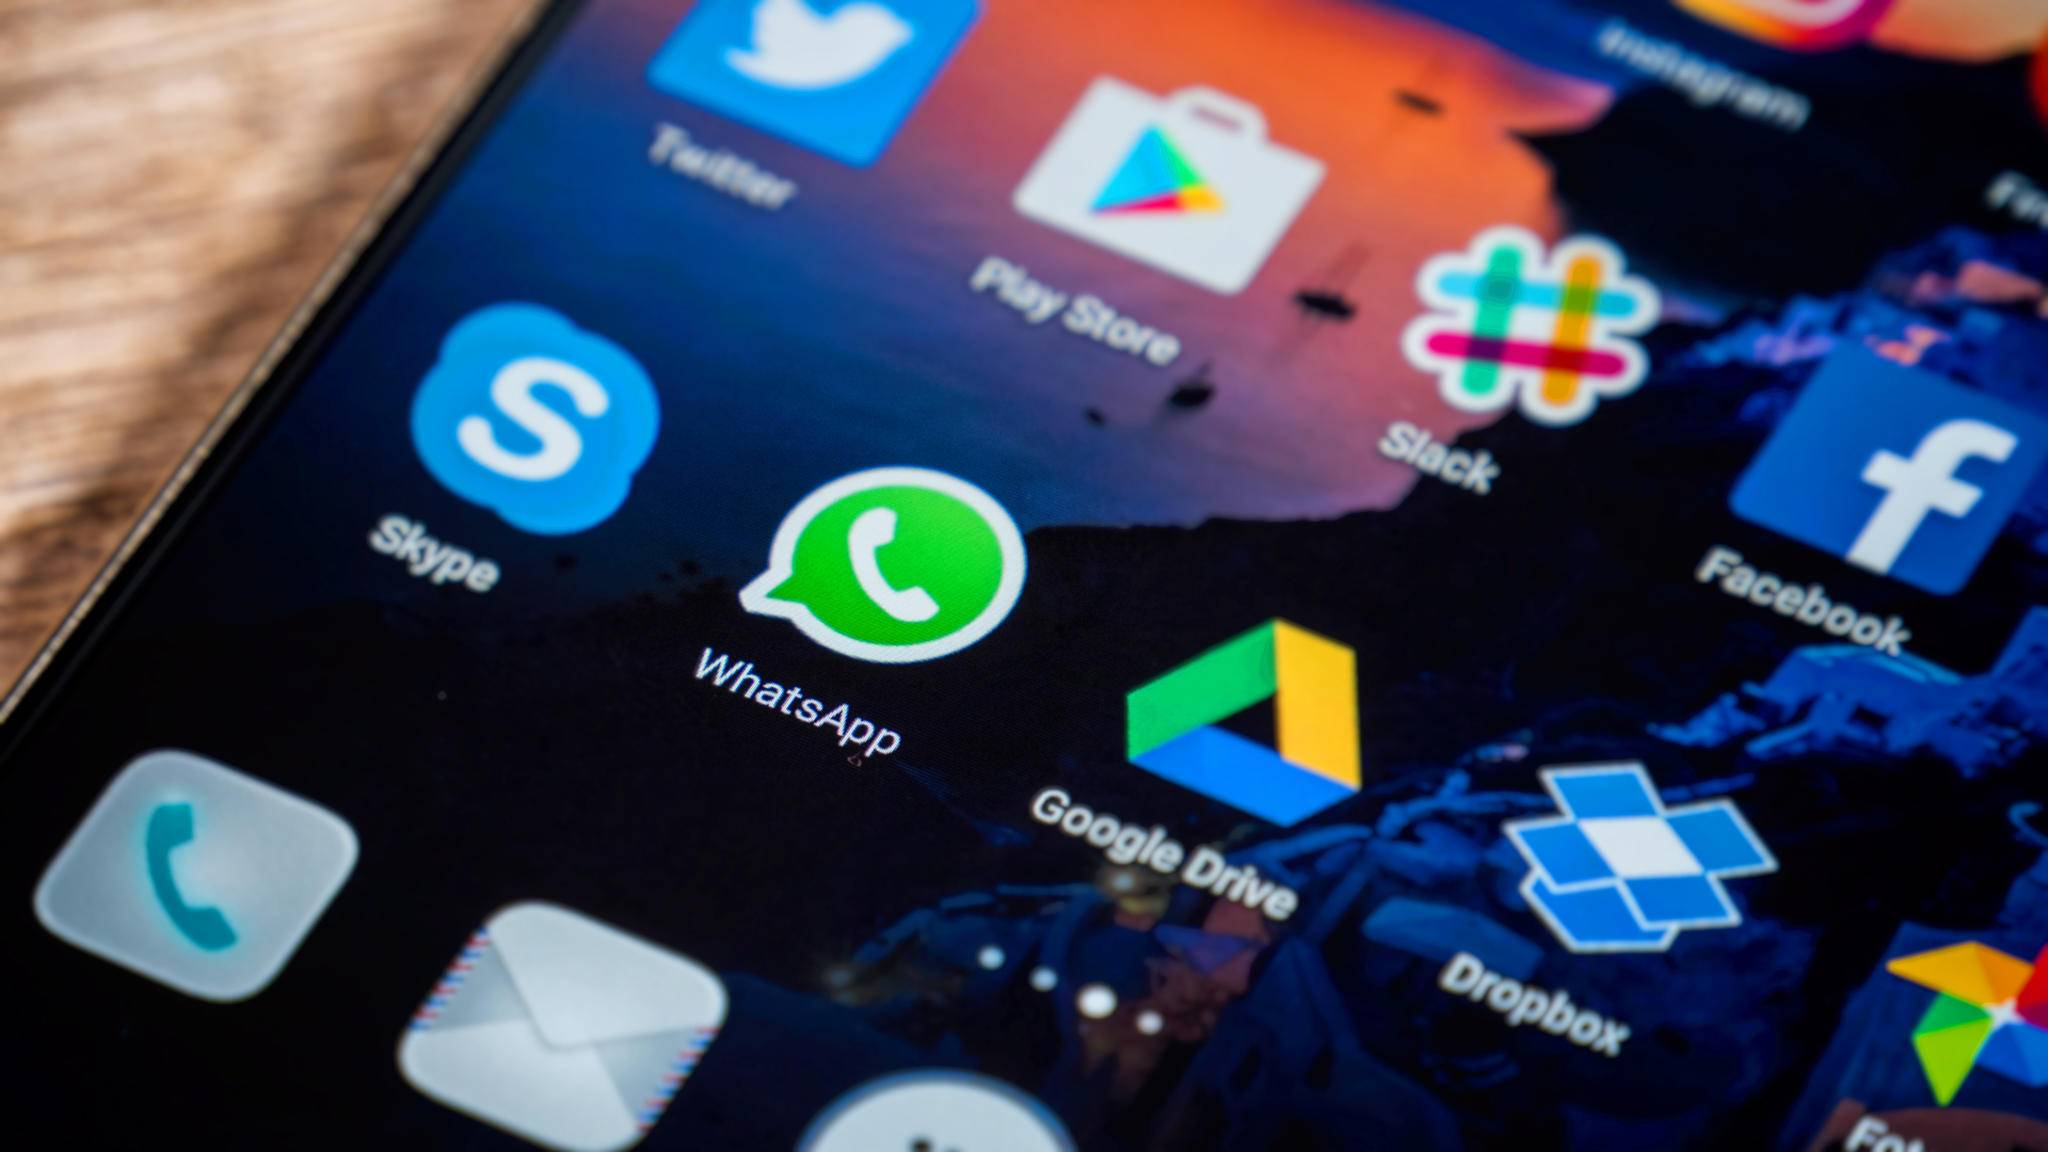 WhatsApp bekommt verifizierte Business-Accounts.